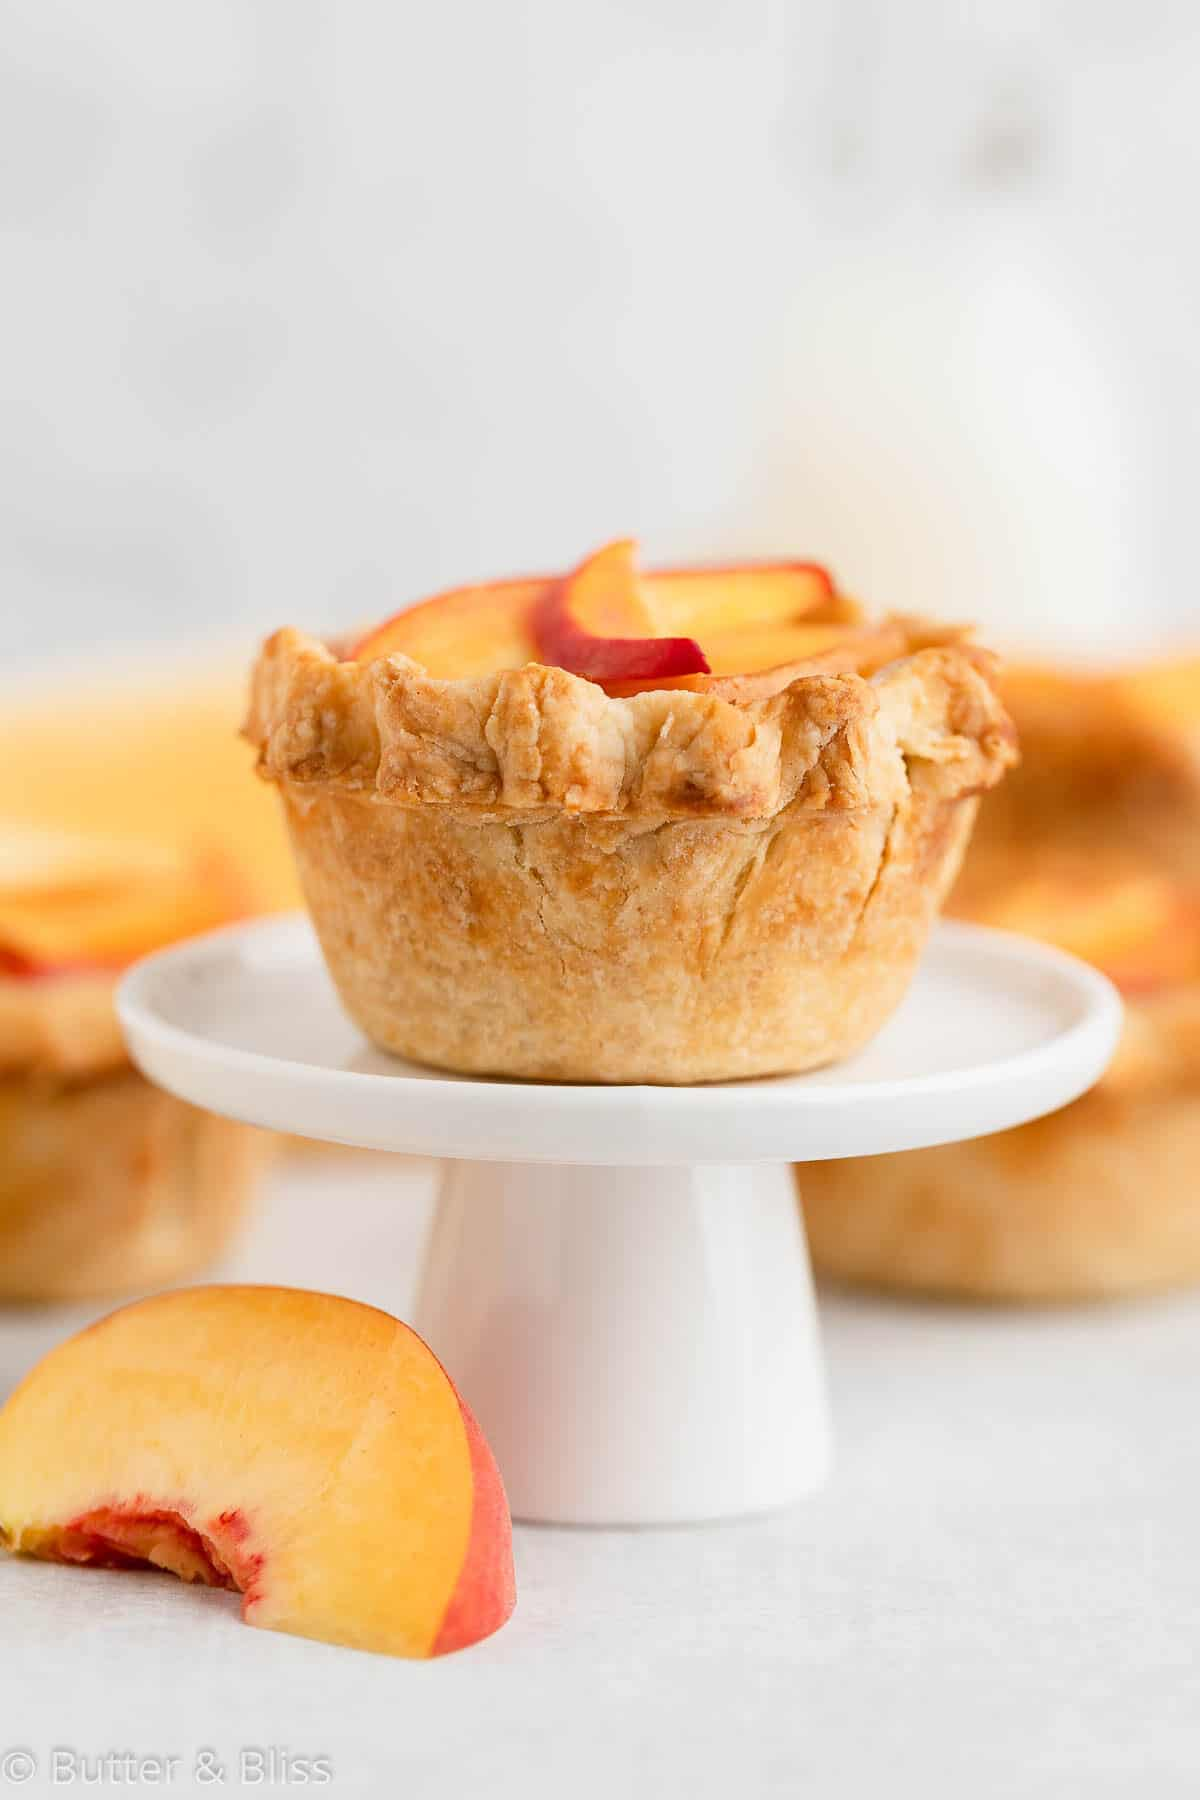 Flaky crust of a mini peach pie on a cupcake stand